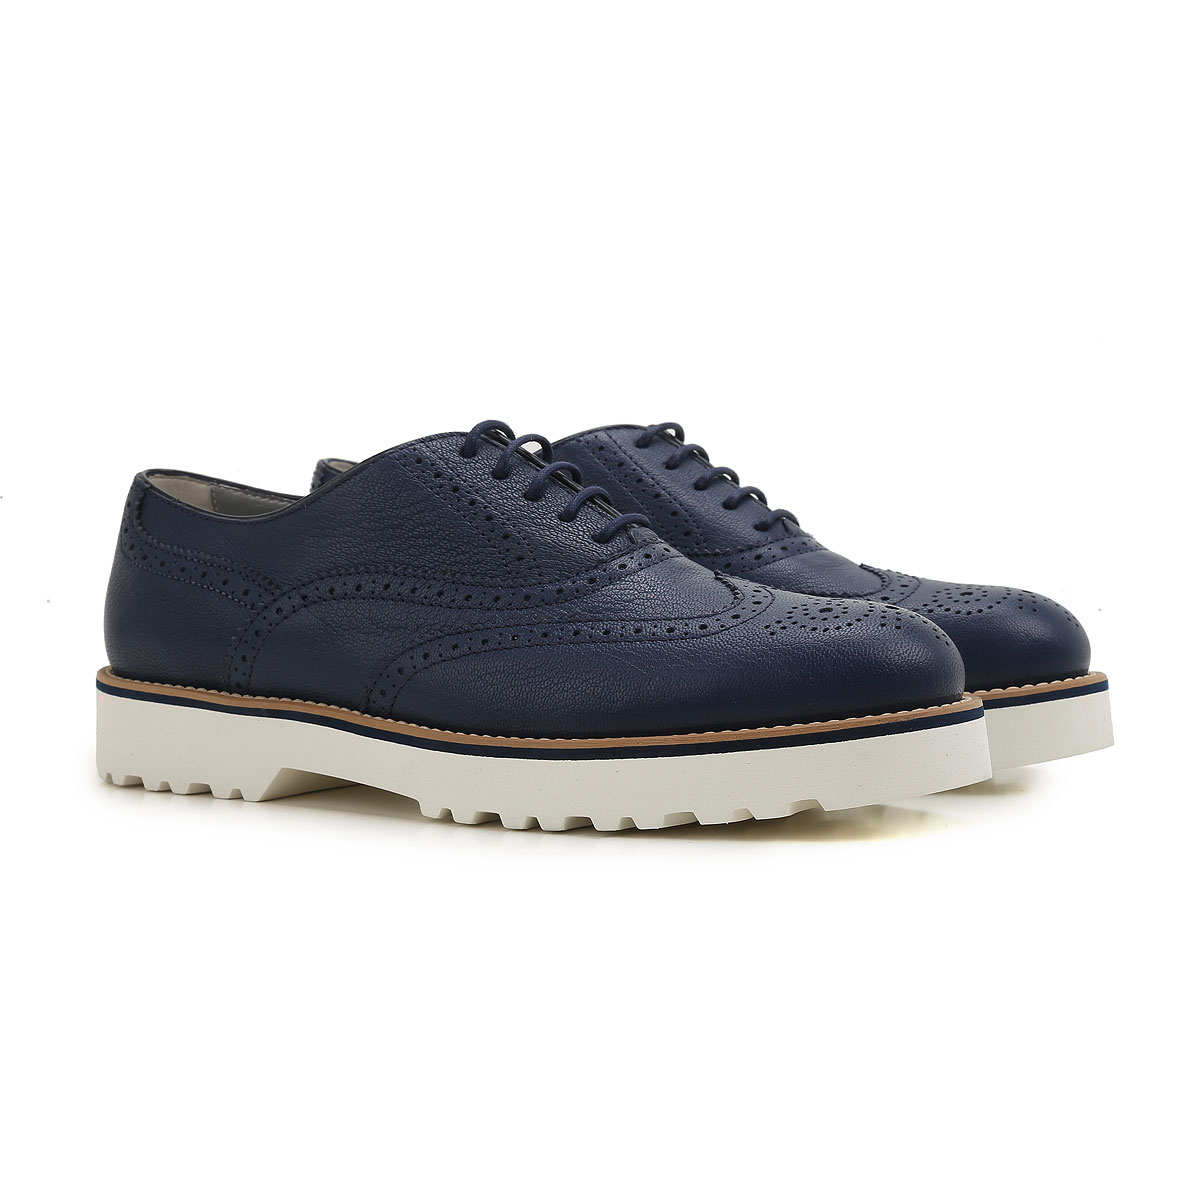 Image of Hogan Brogues Oxford Shoes On Sale in Outlet, Blue, Leather, 2017, 10 7 9